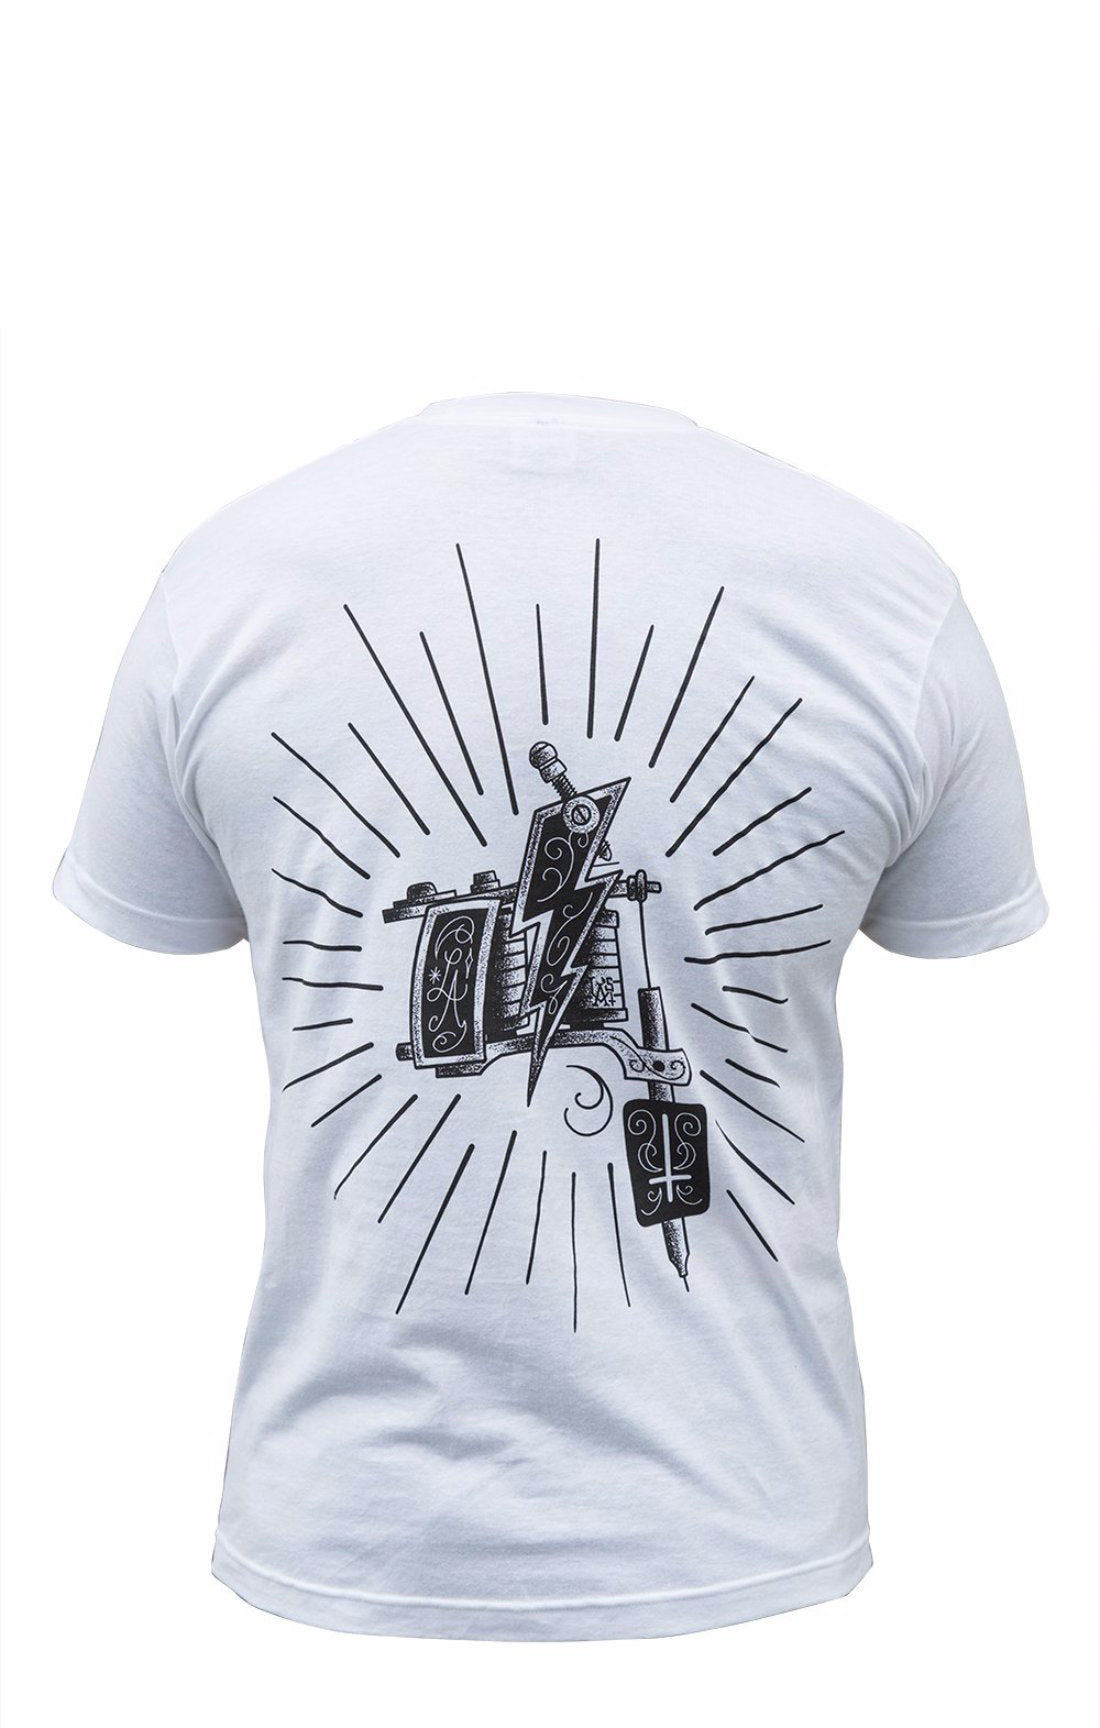 The MACHINE Tee by Lucky Aki